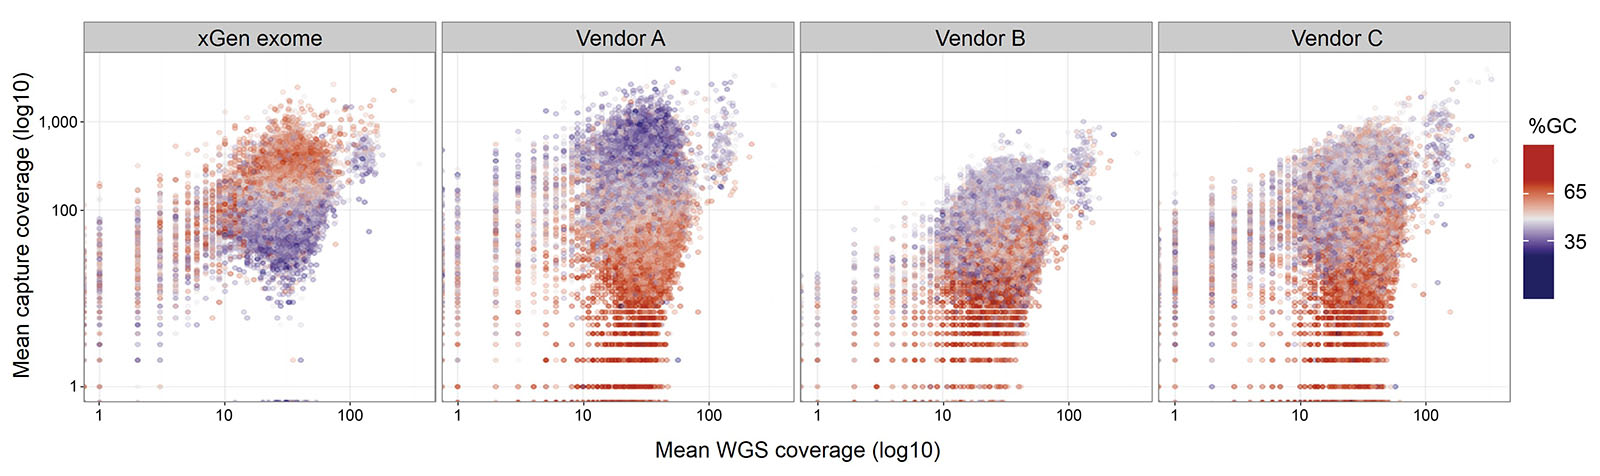 xGen exome - comparison to WGS